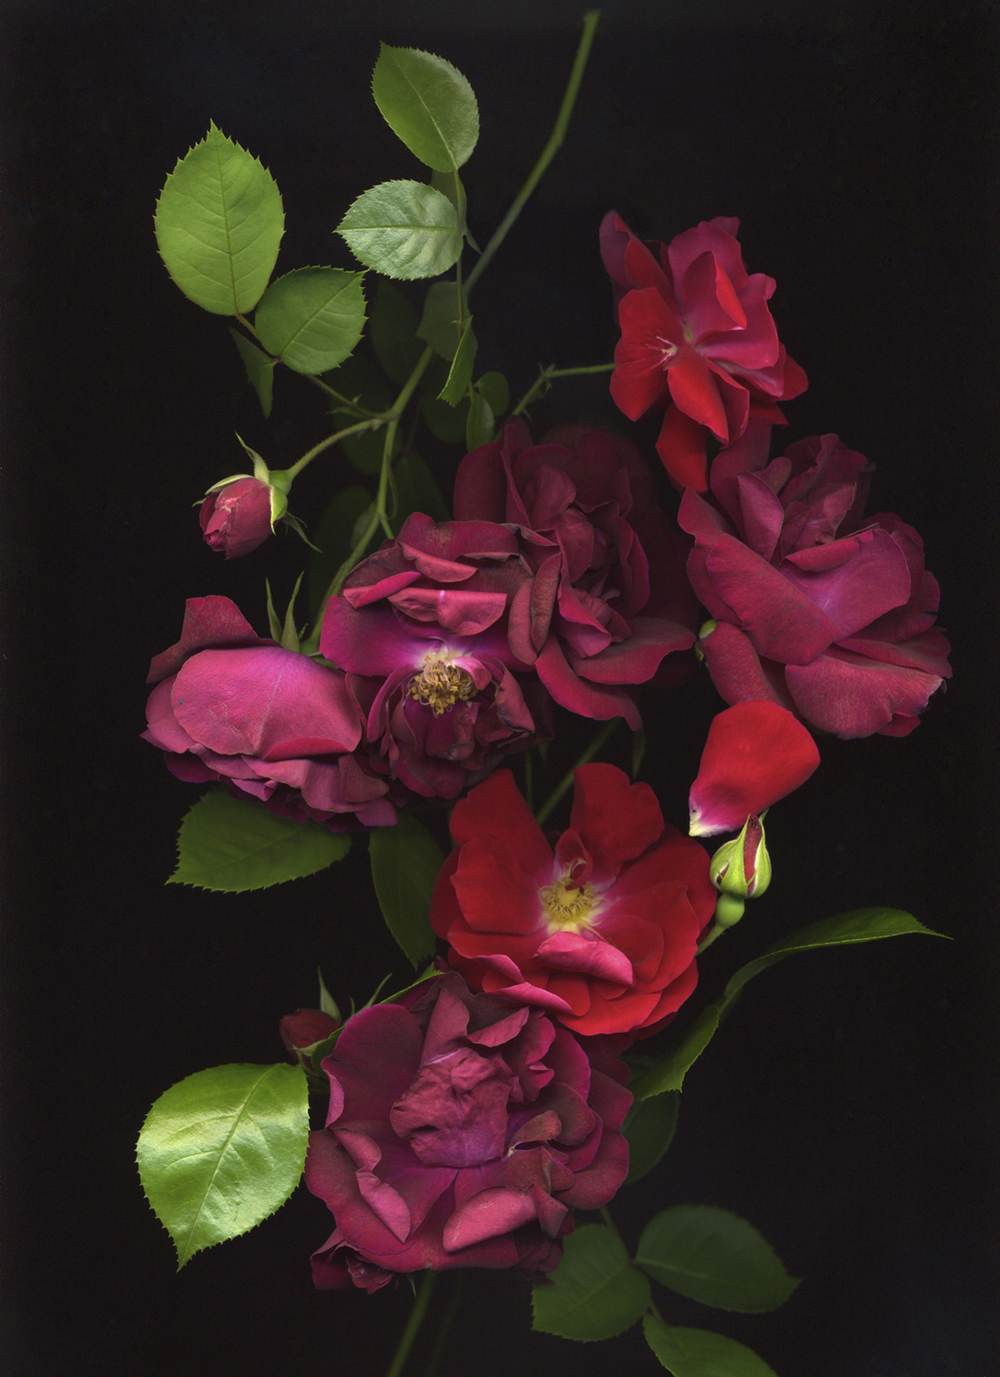 Roses (from the series Botanica)  Pigment inkjet print on paper  15 x 19 in.